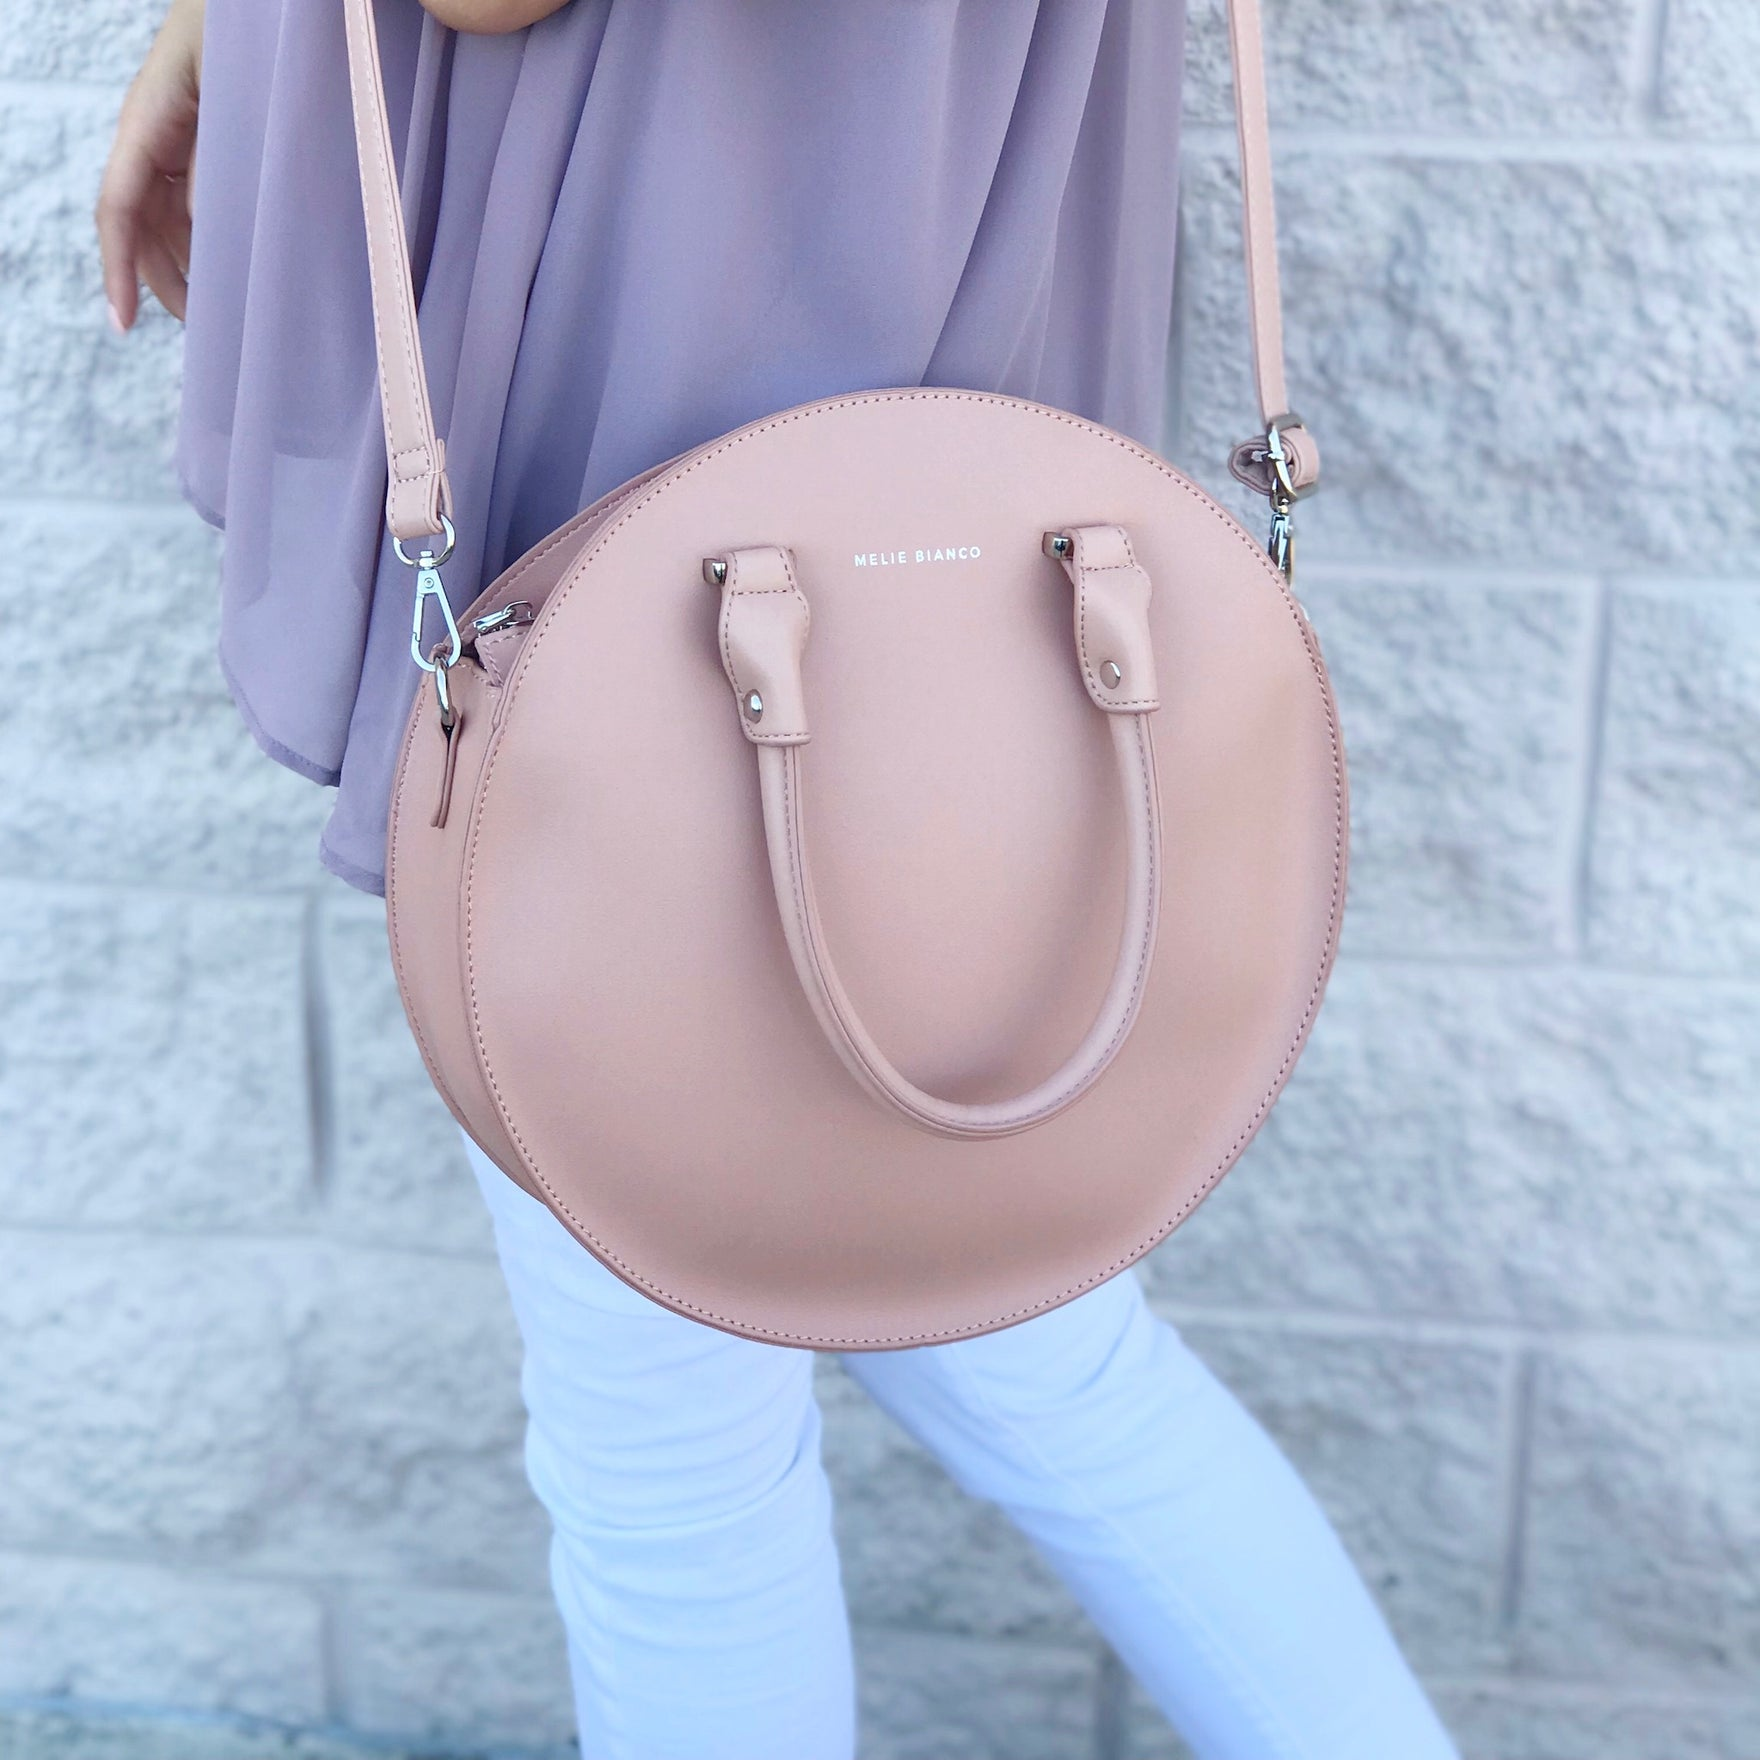 Top 8 Spring & Easter Handbags